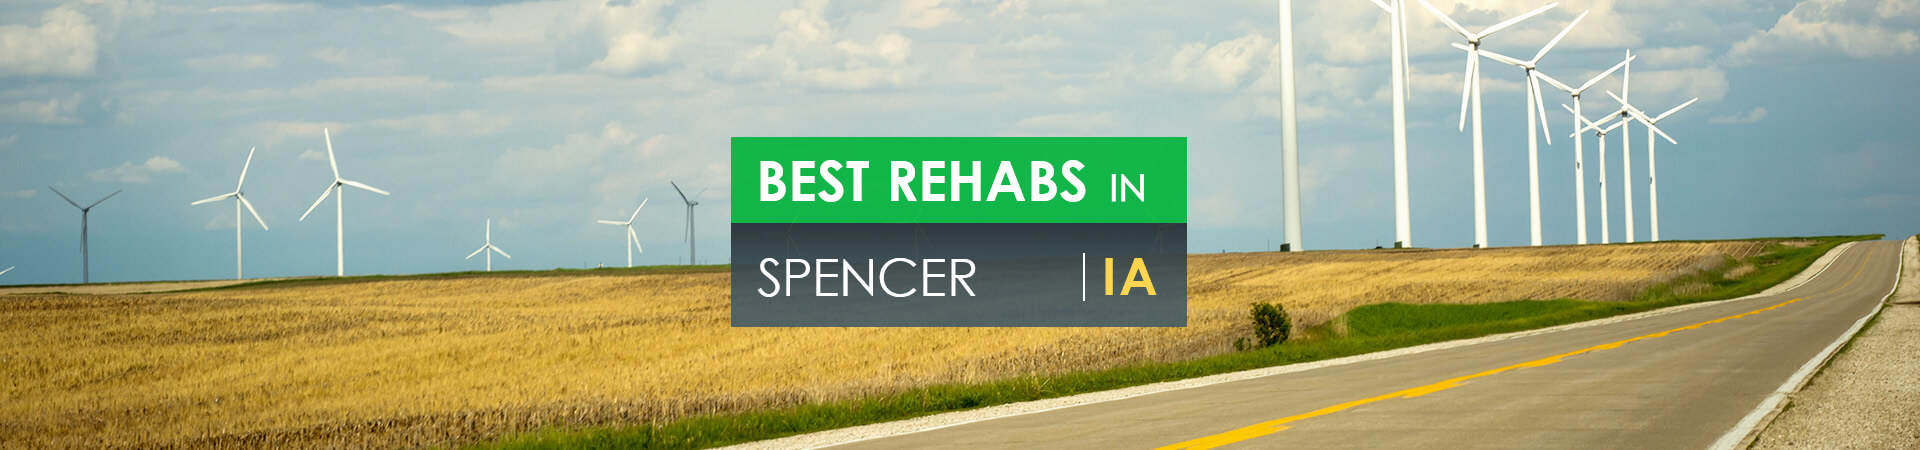 Best rehabs in Spencer, IA